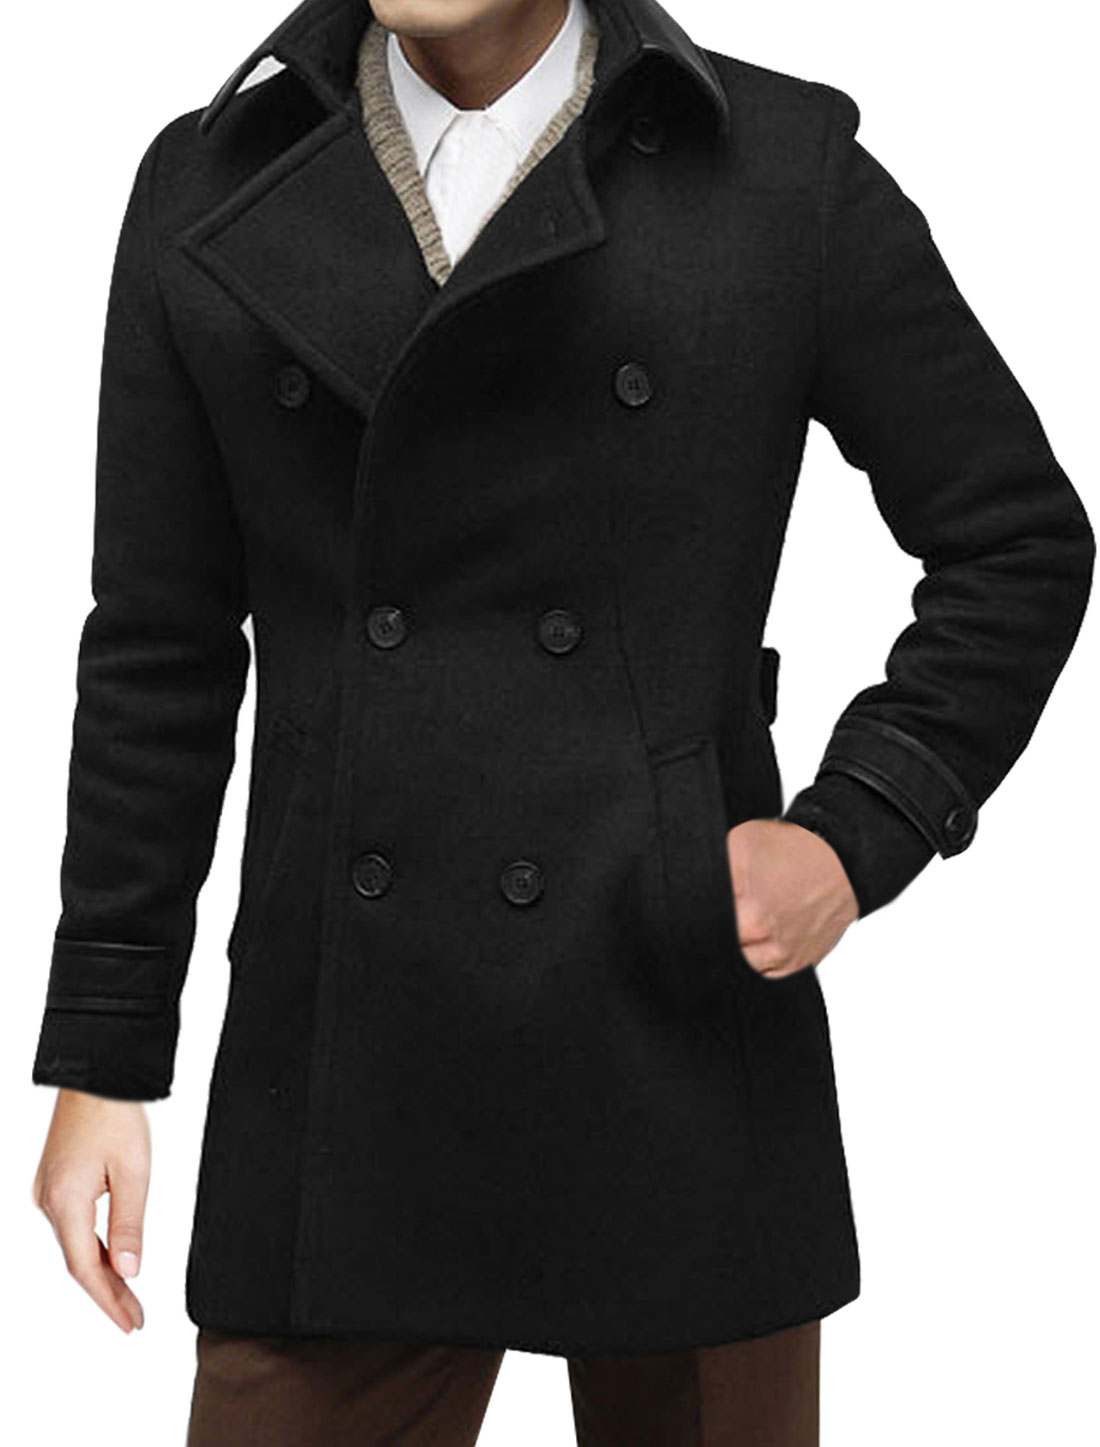 Mens Black Long Sleeve Point Collar Korea Stylish Tweed Overcoat M